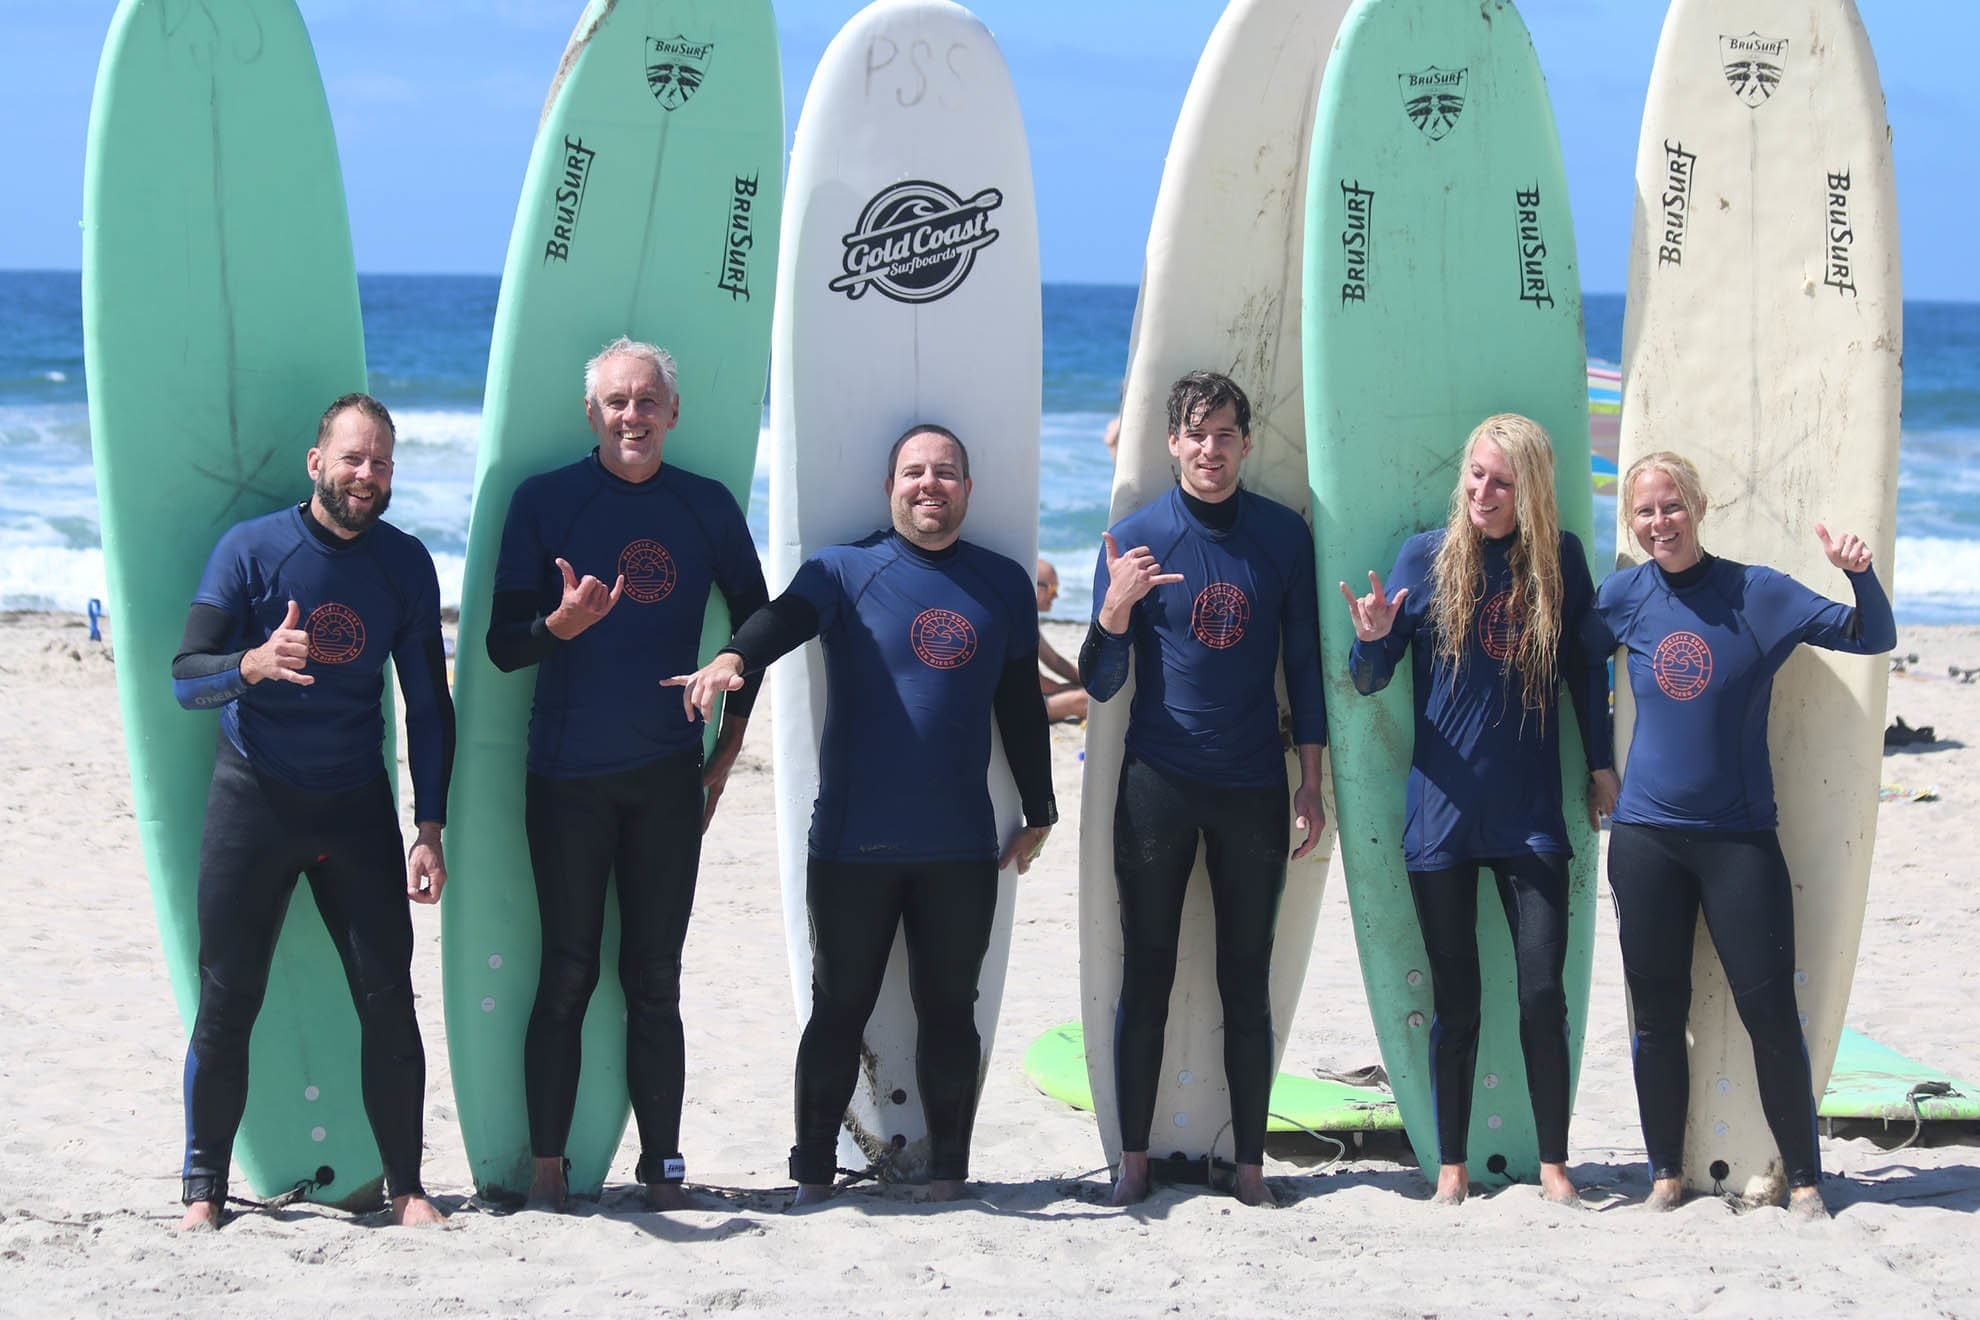 Group of surfers in San Diego